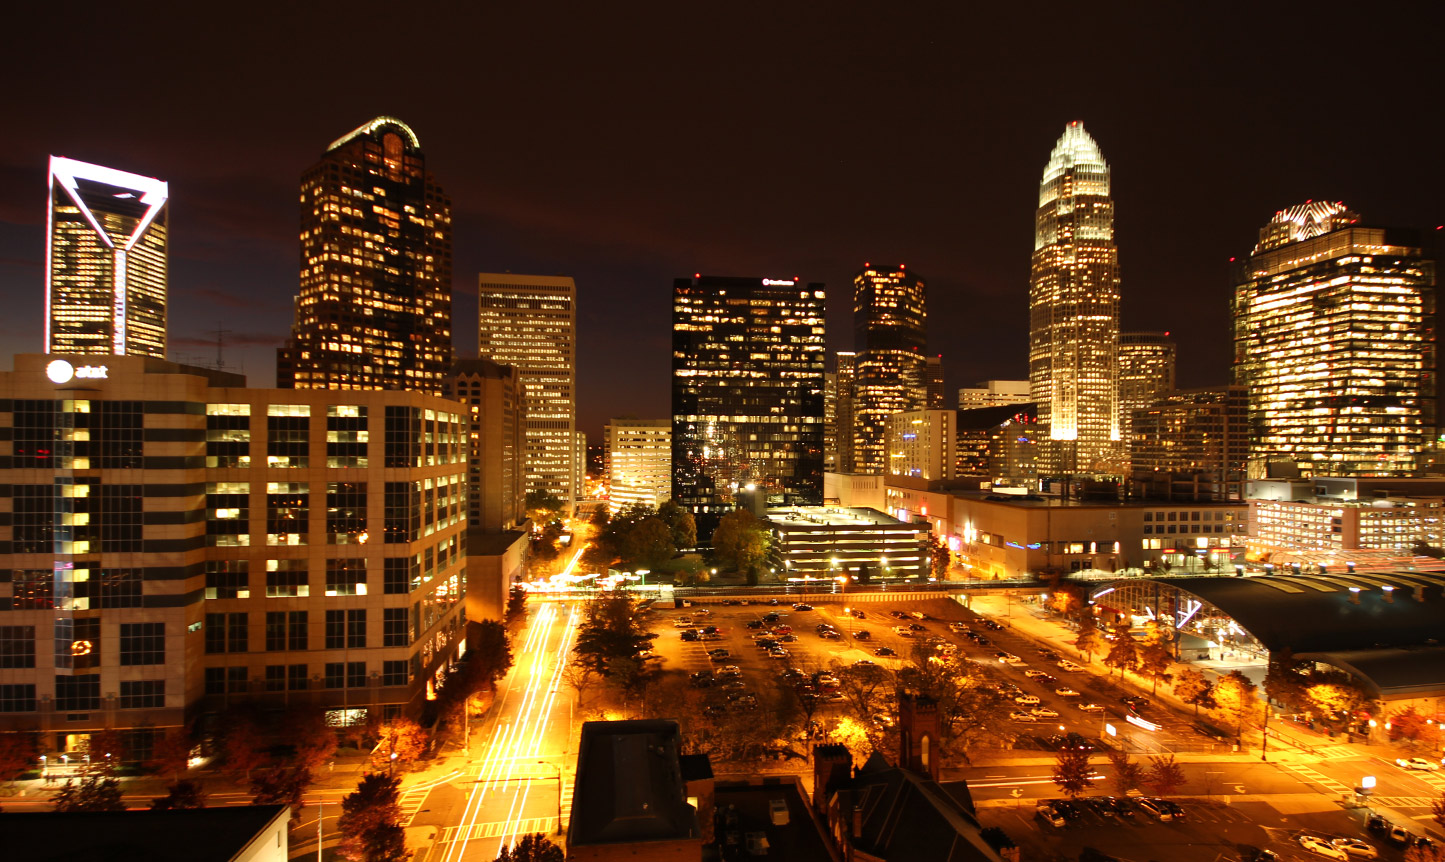 halloween freebies, deals, and events all around charlotte